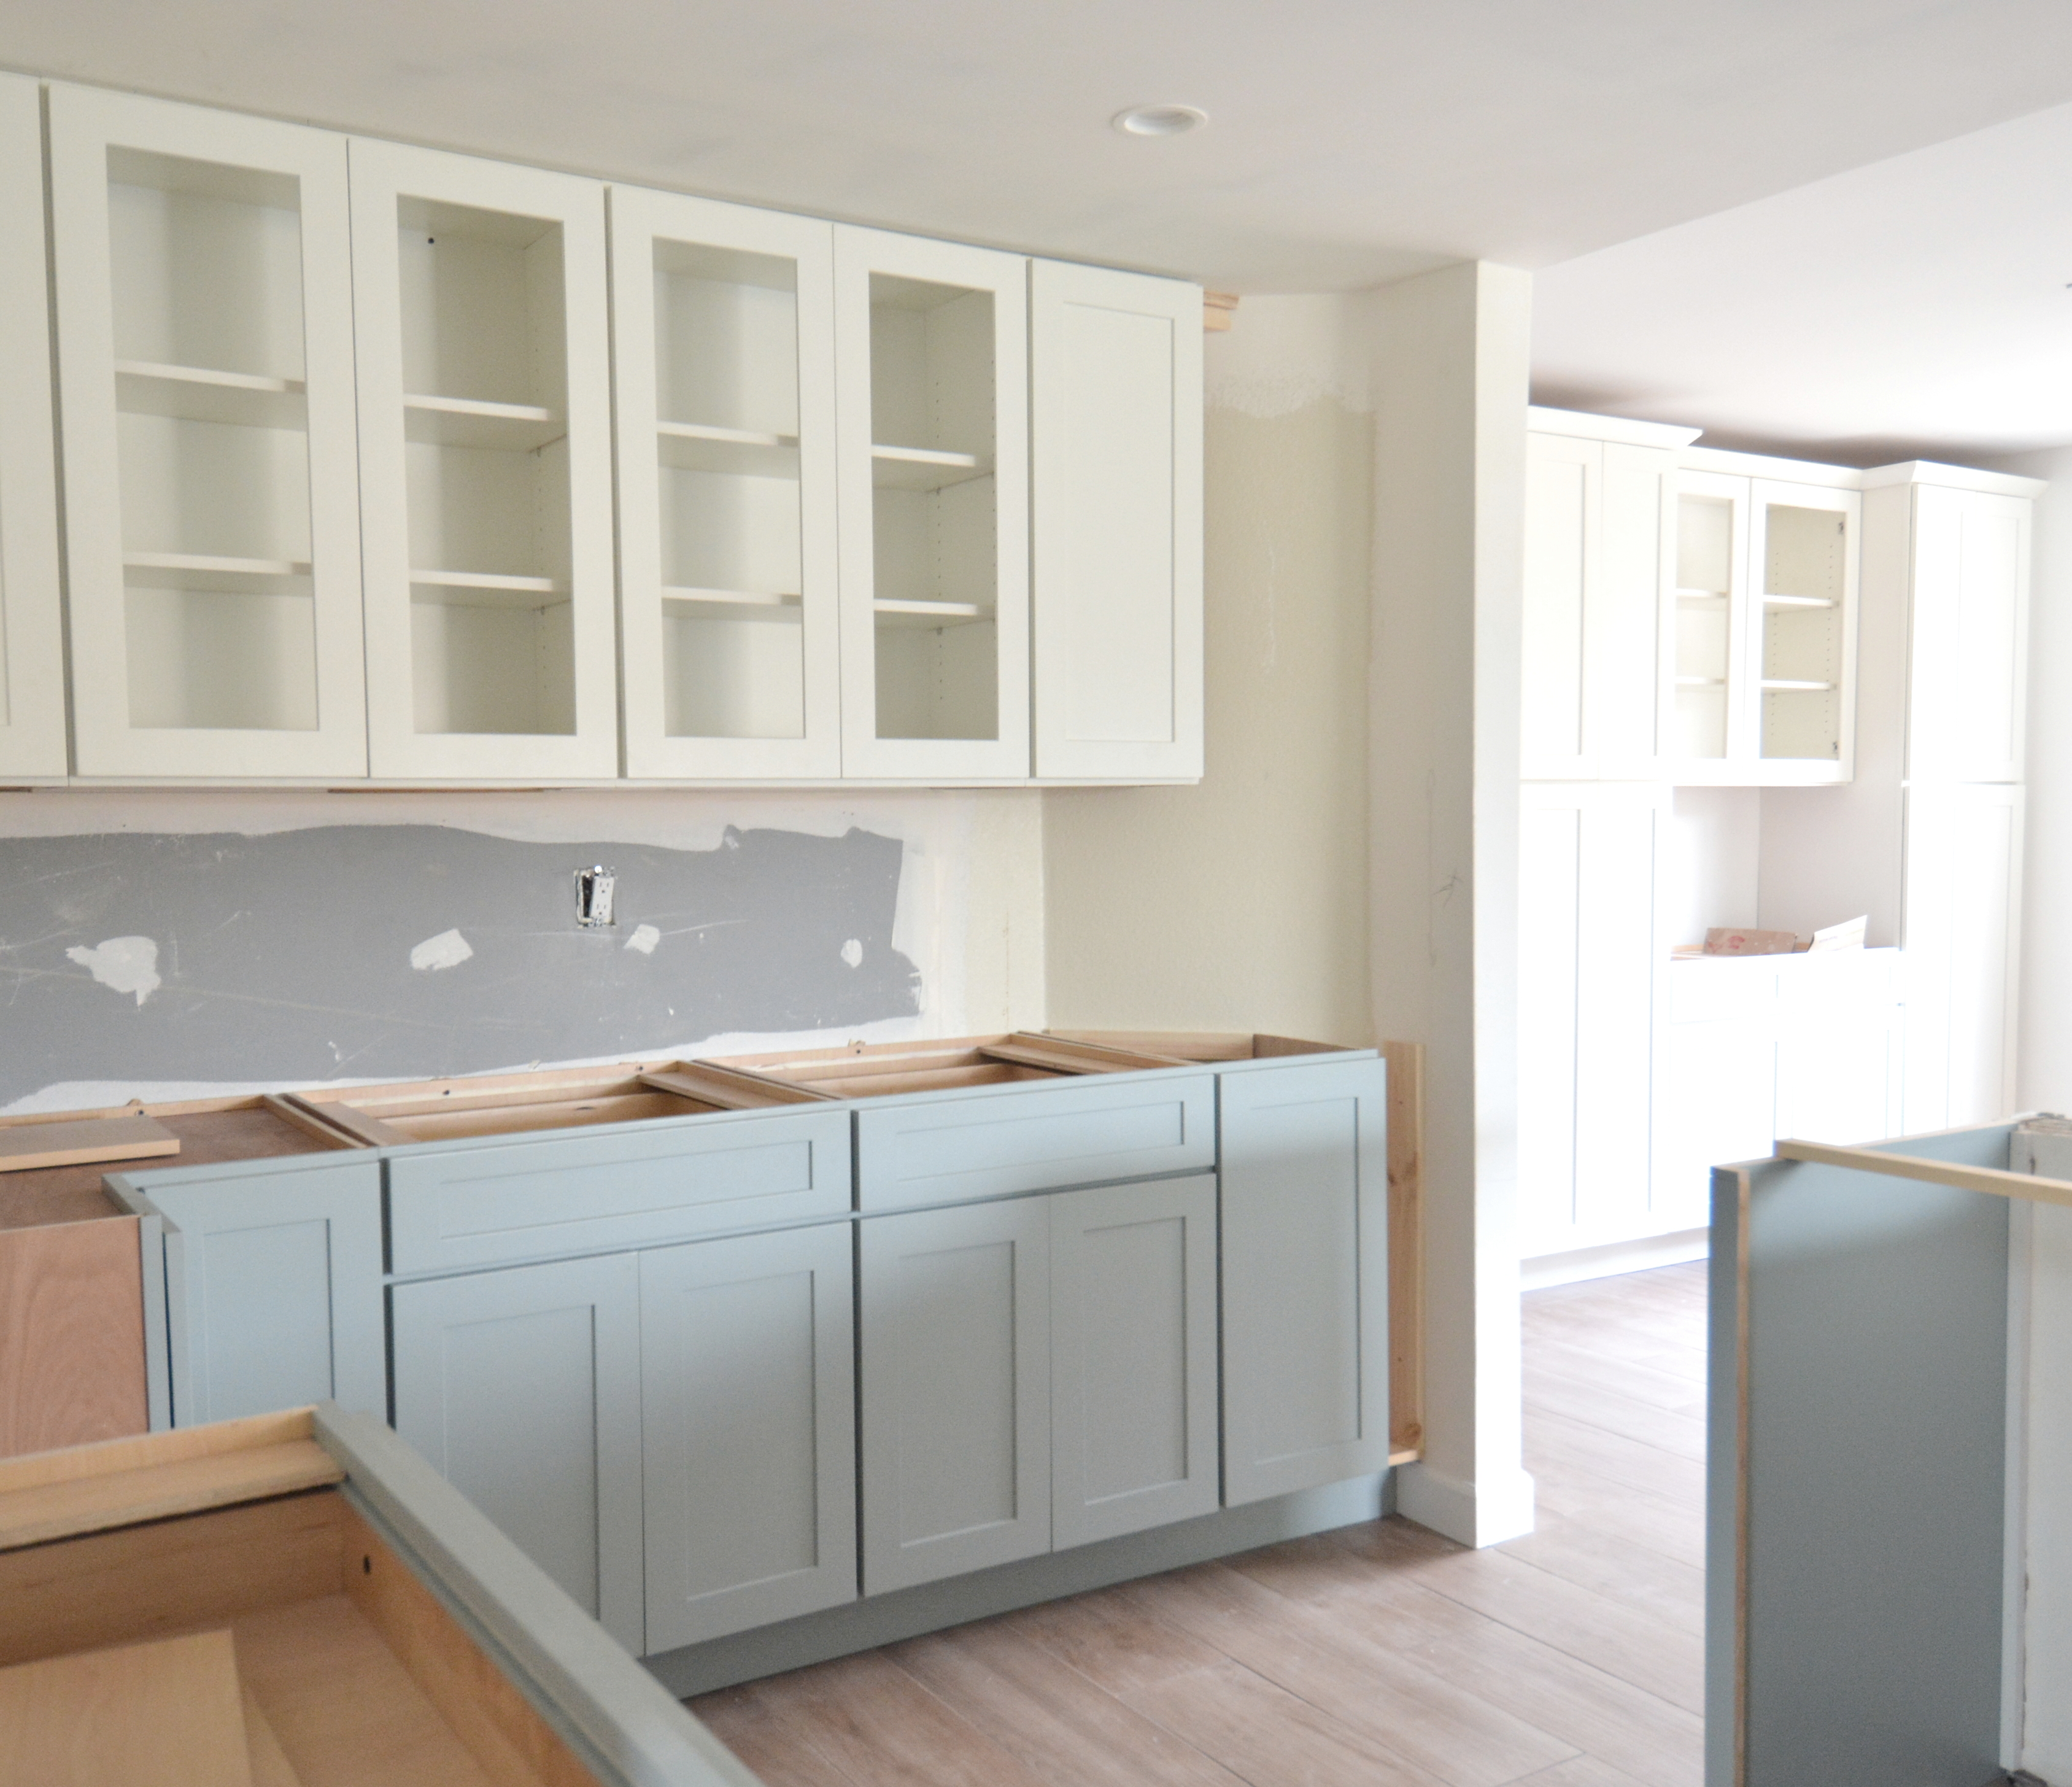 example by working with semi custom cabinets in fixed widths once they were installed i was left with a wider open space on the right of the cabinets